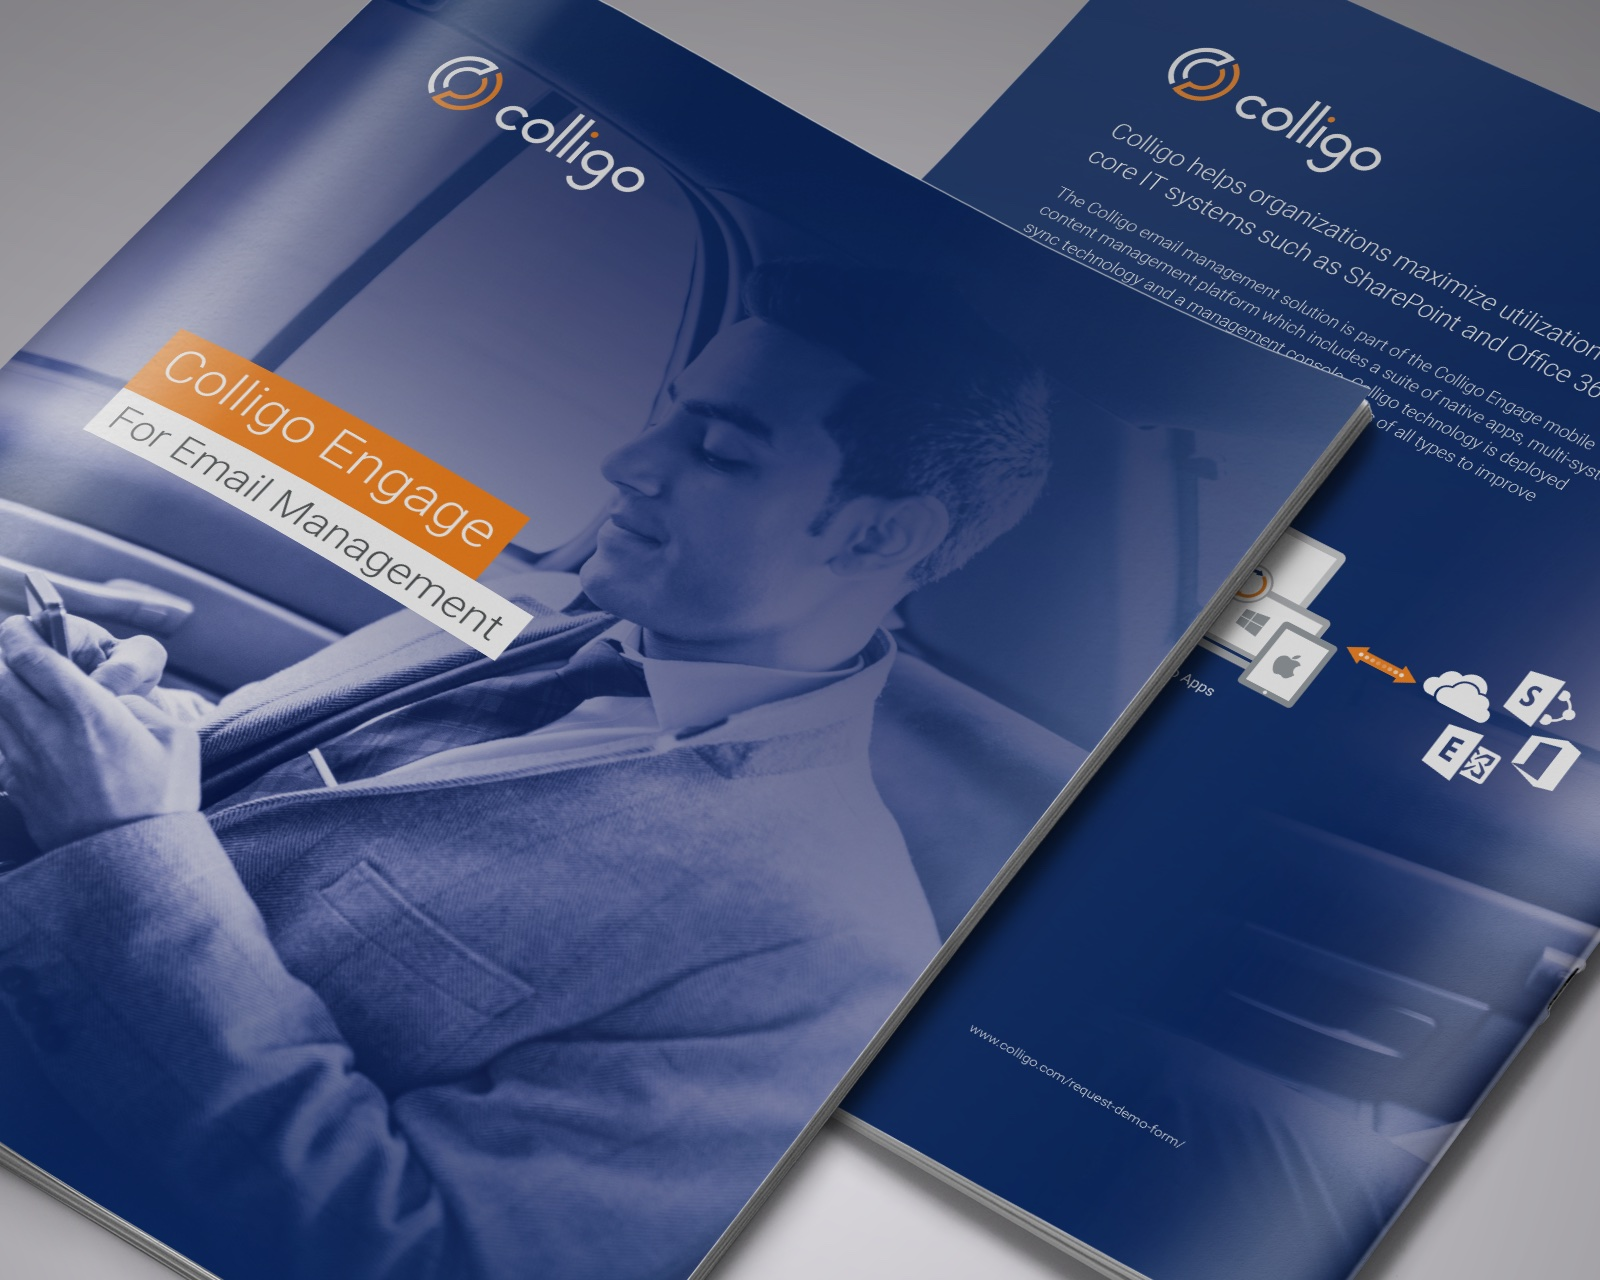 Colligo Brochure Design